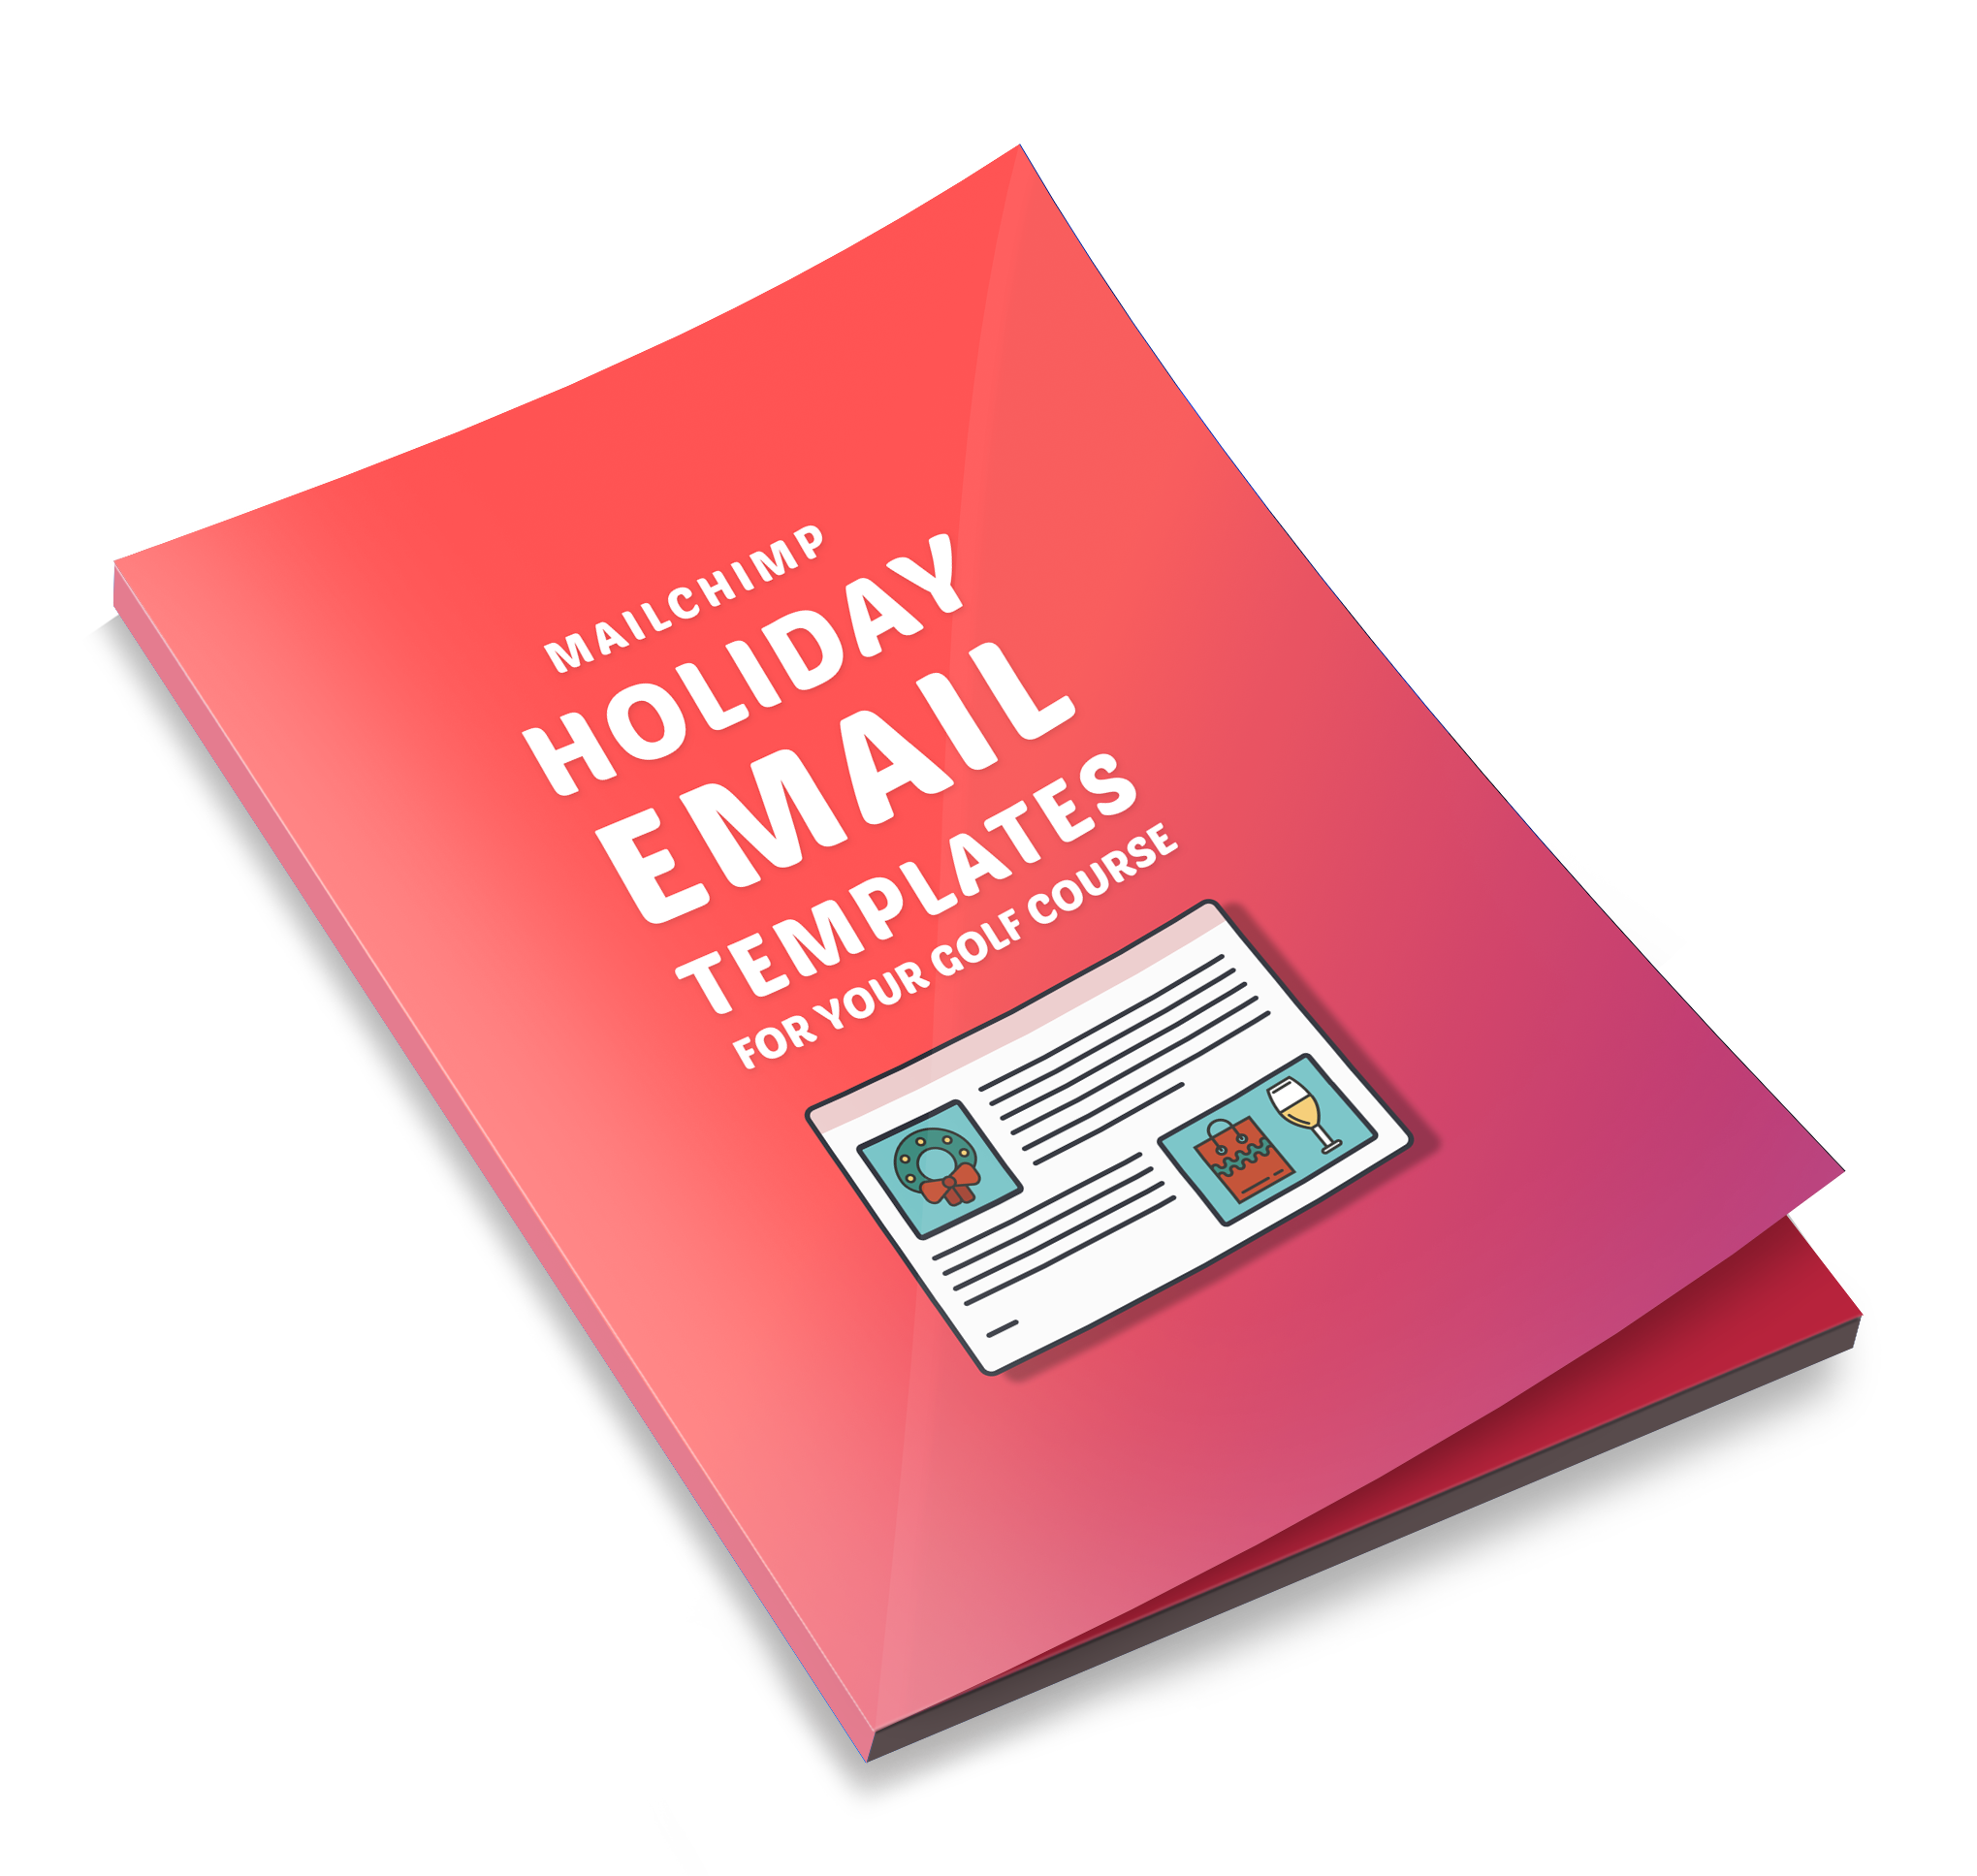 holiday-email-templates-red.png